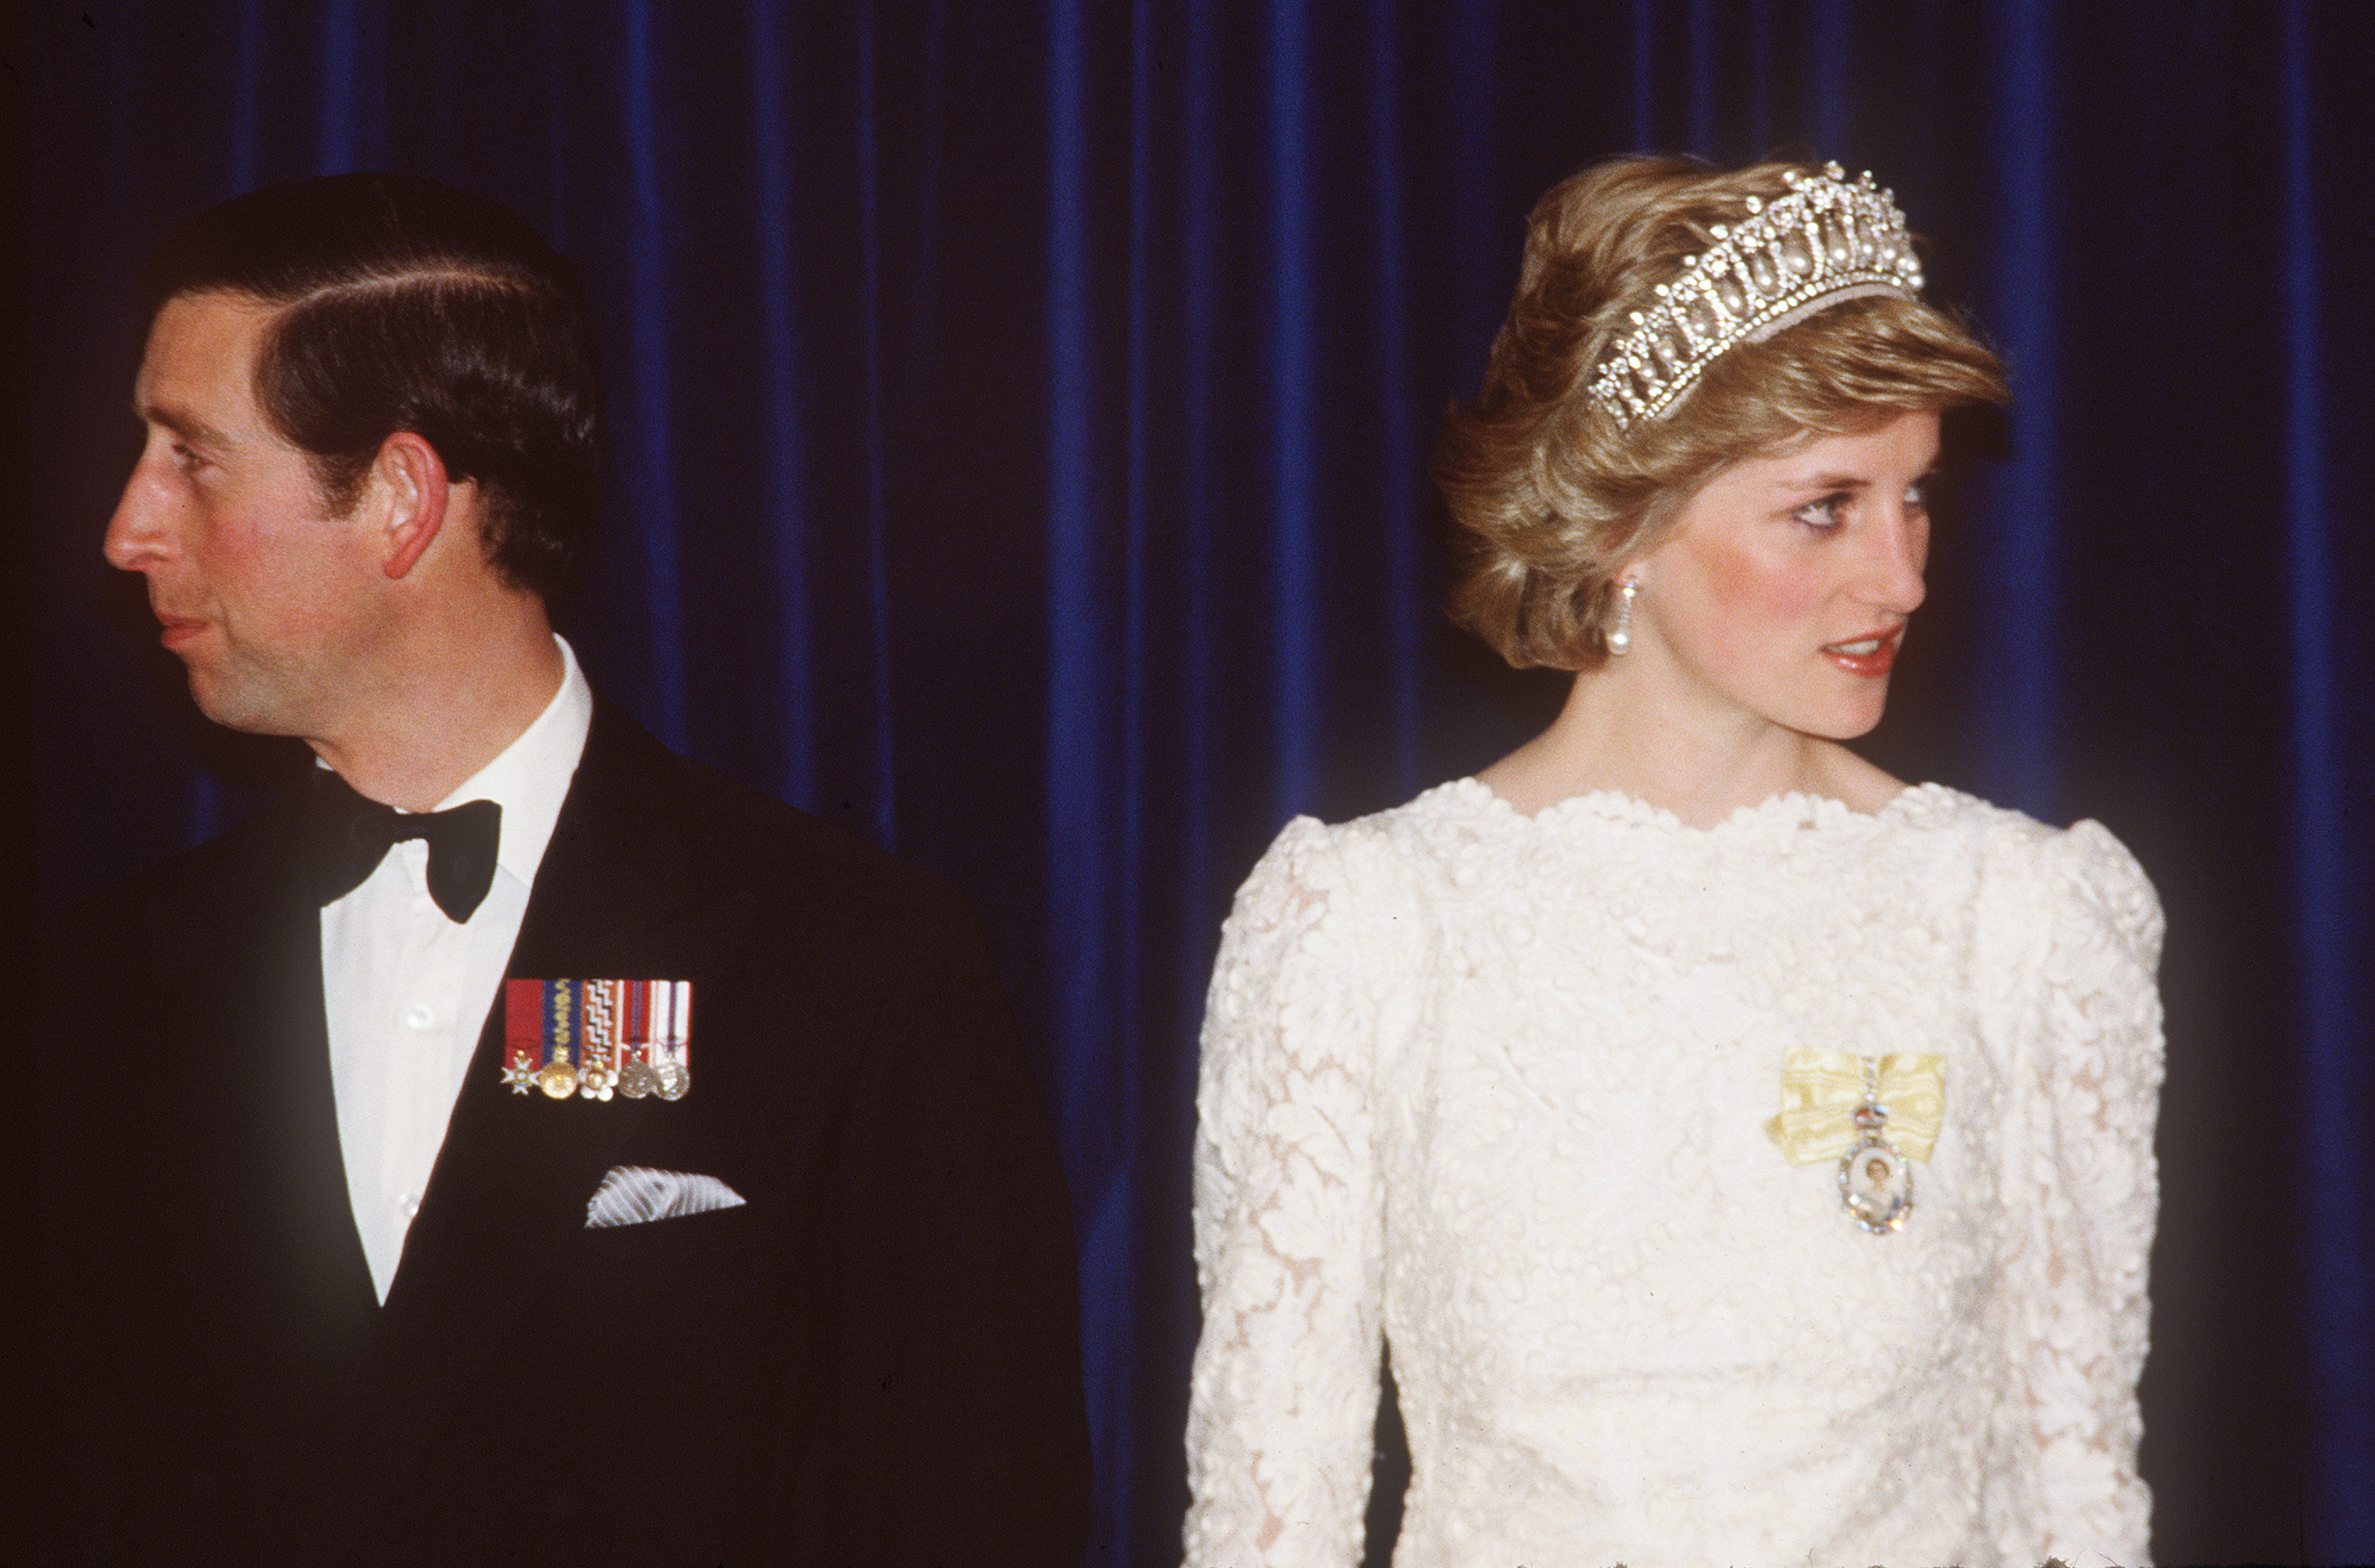 Image source: Getty Images